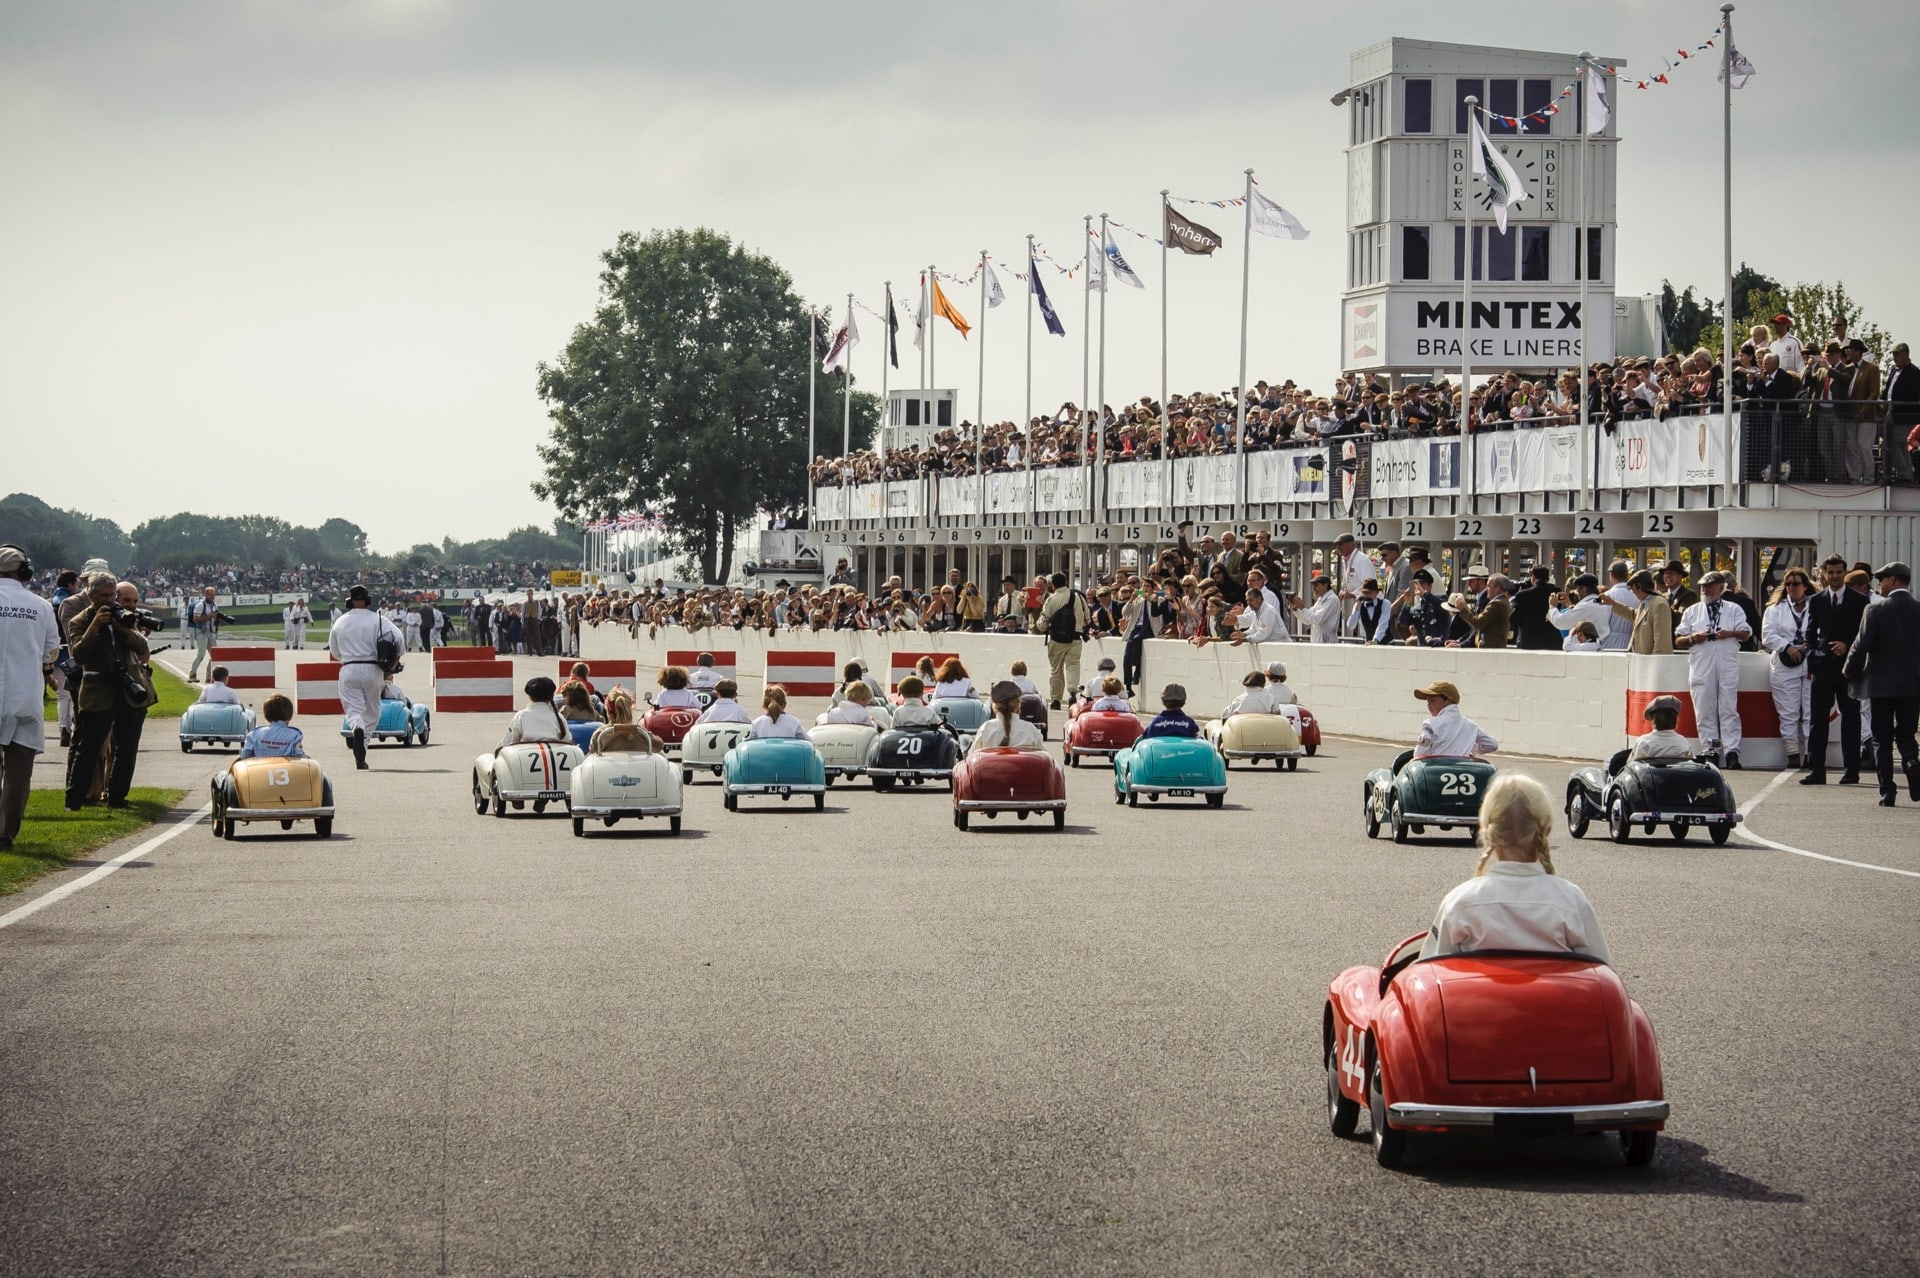 Children racing at the Rolls-Royce Goodwood Revival experience.